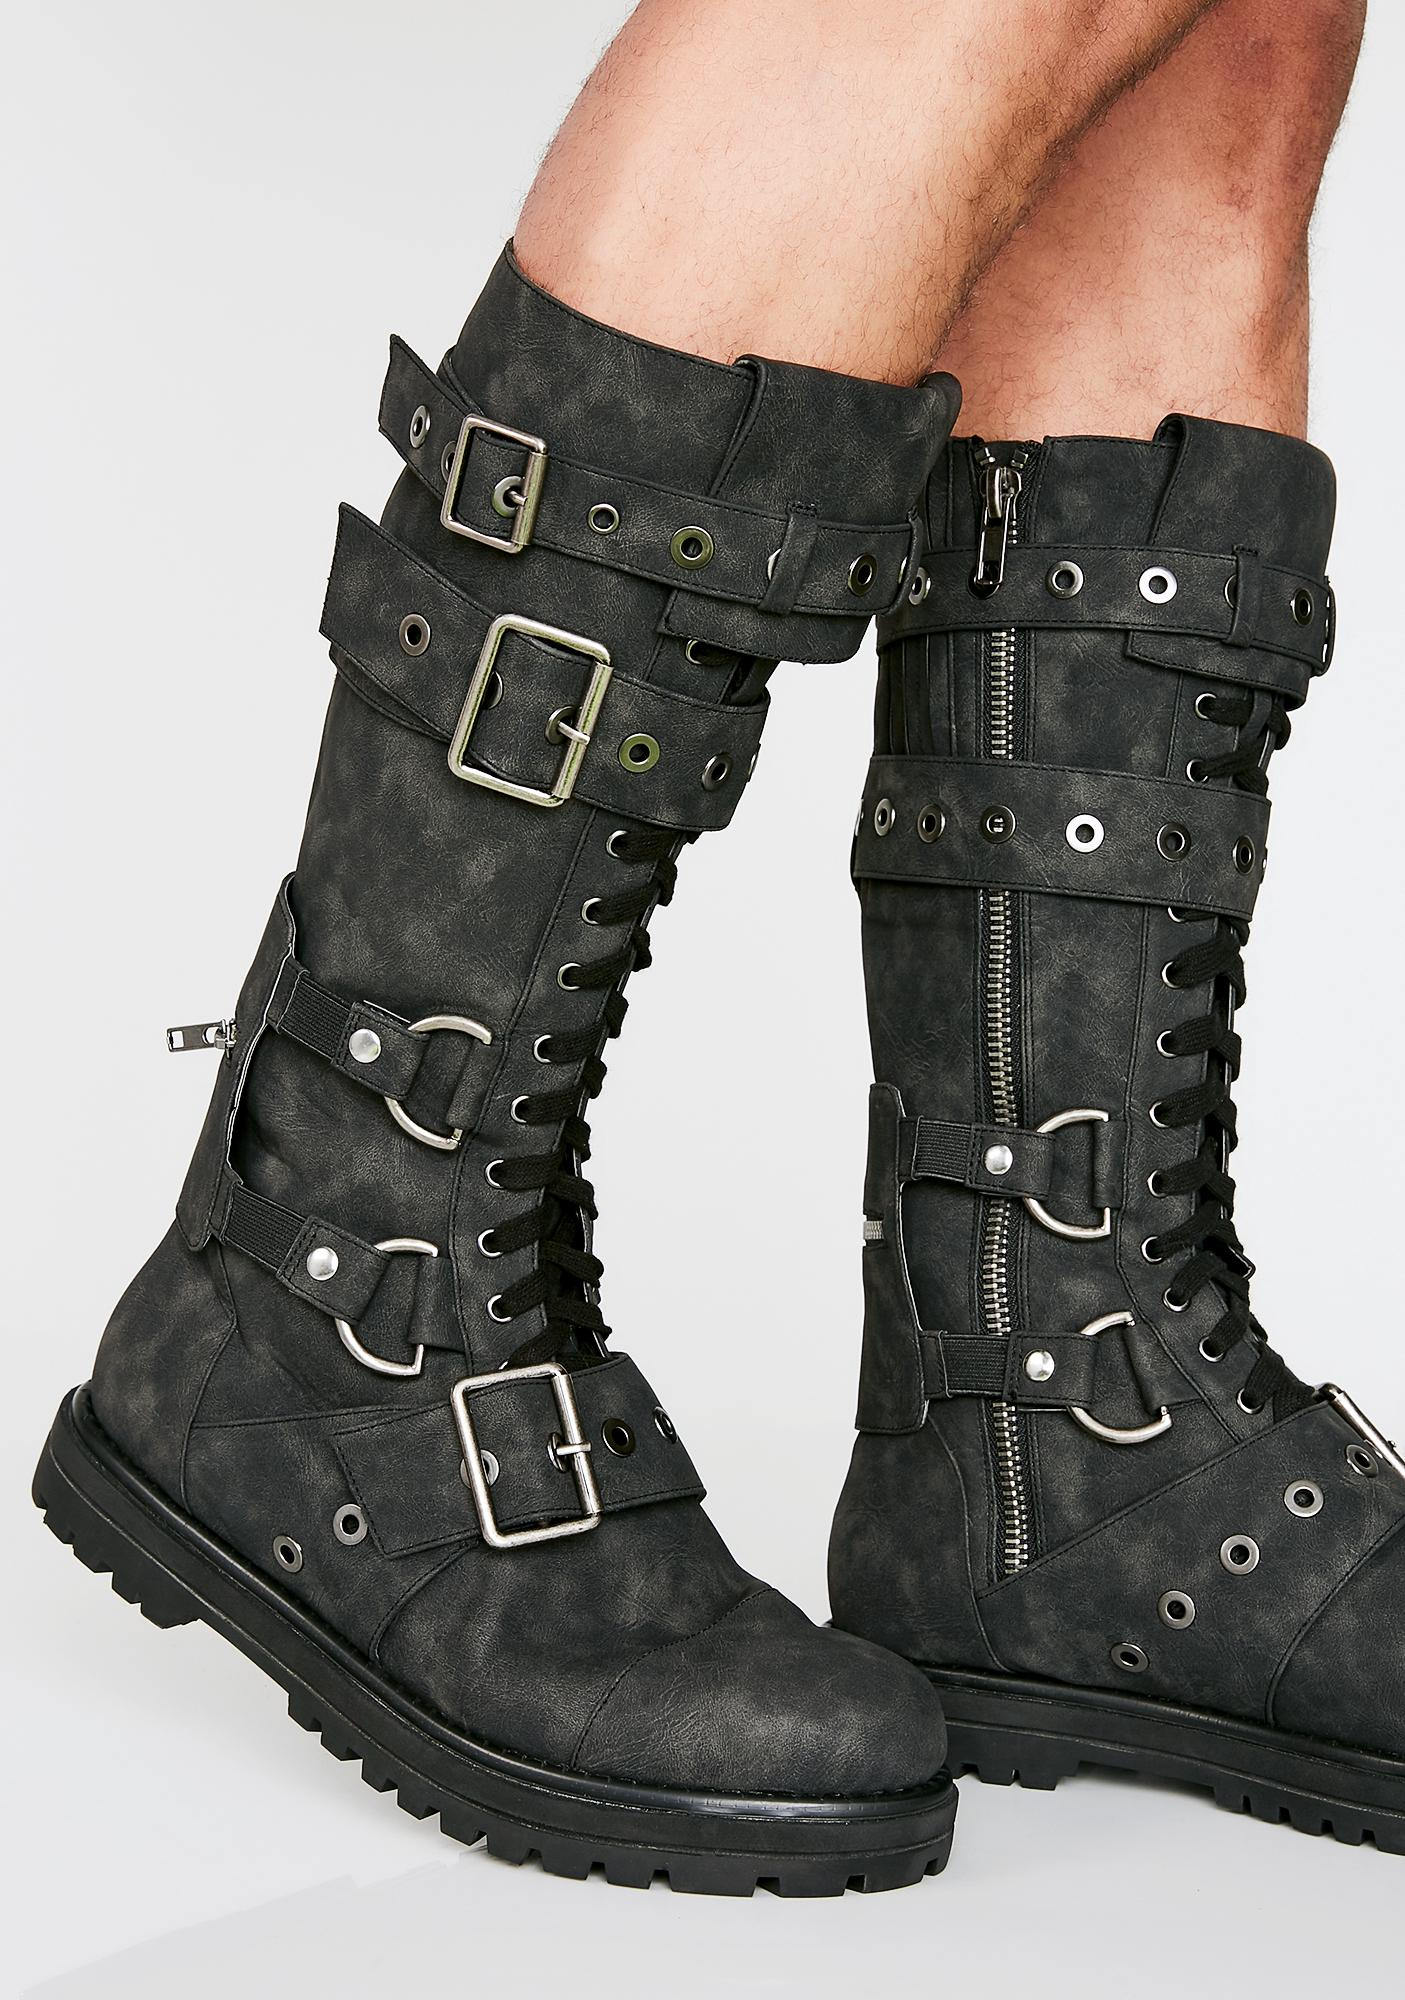 Club Exx Hour Of Devastation Unisex Combat Boots